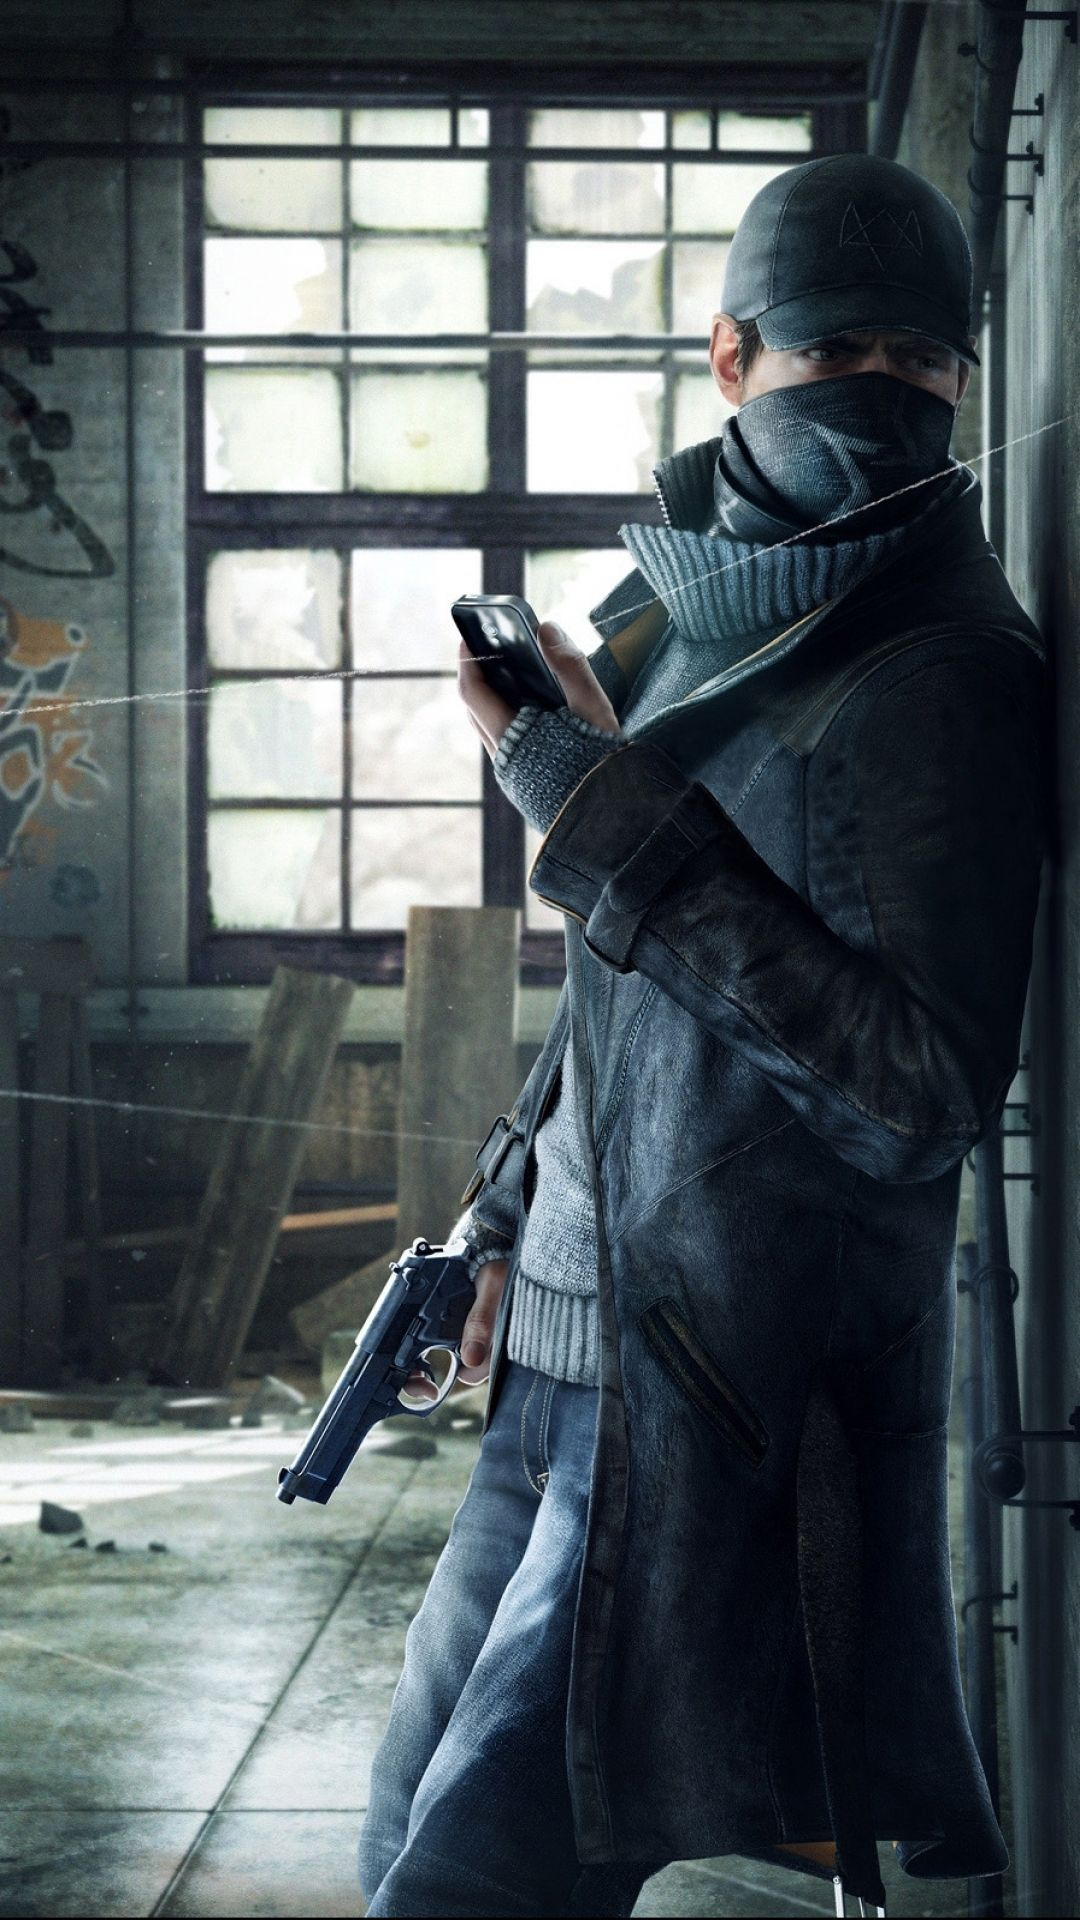 Watch Dogs Appleiphone 6 Plus 1080x1920 23 Wallpapers